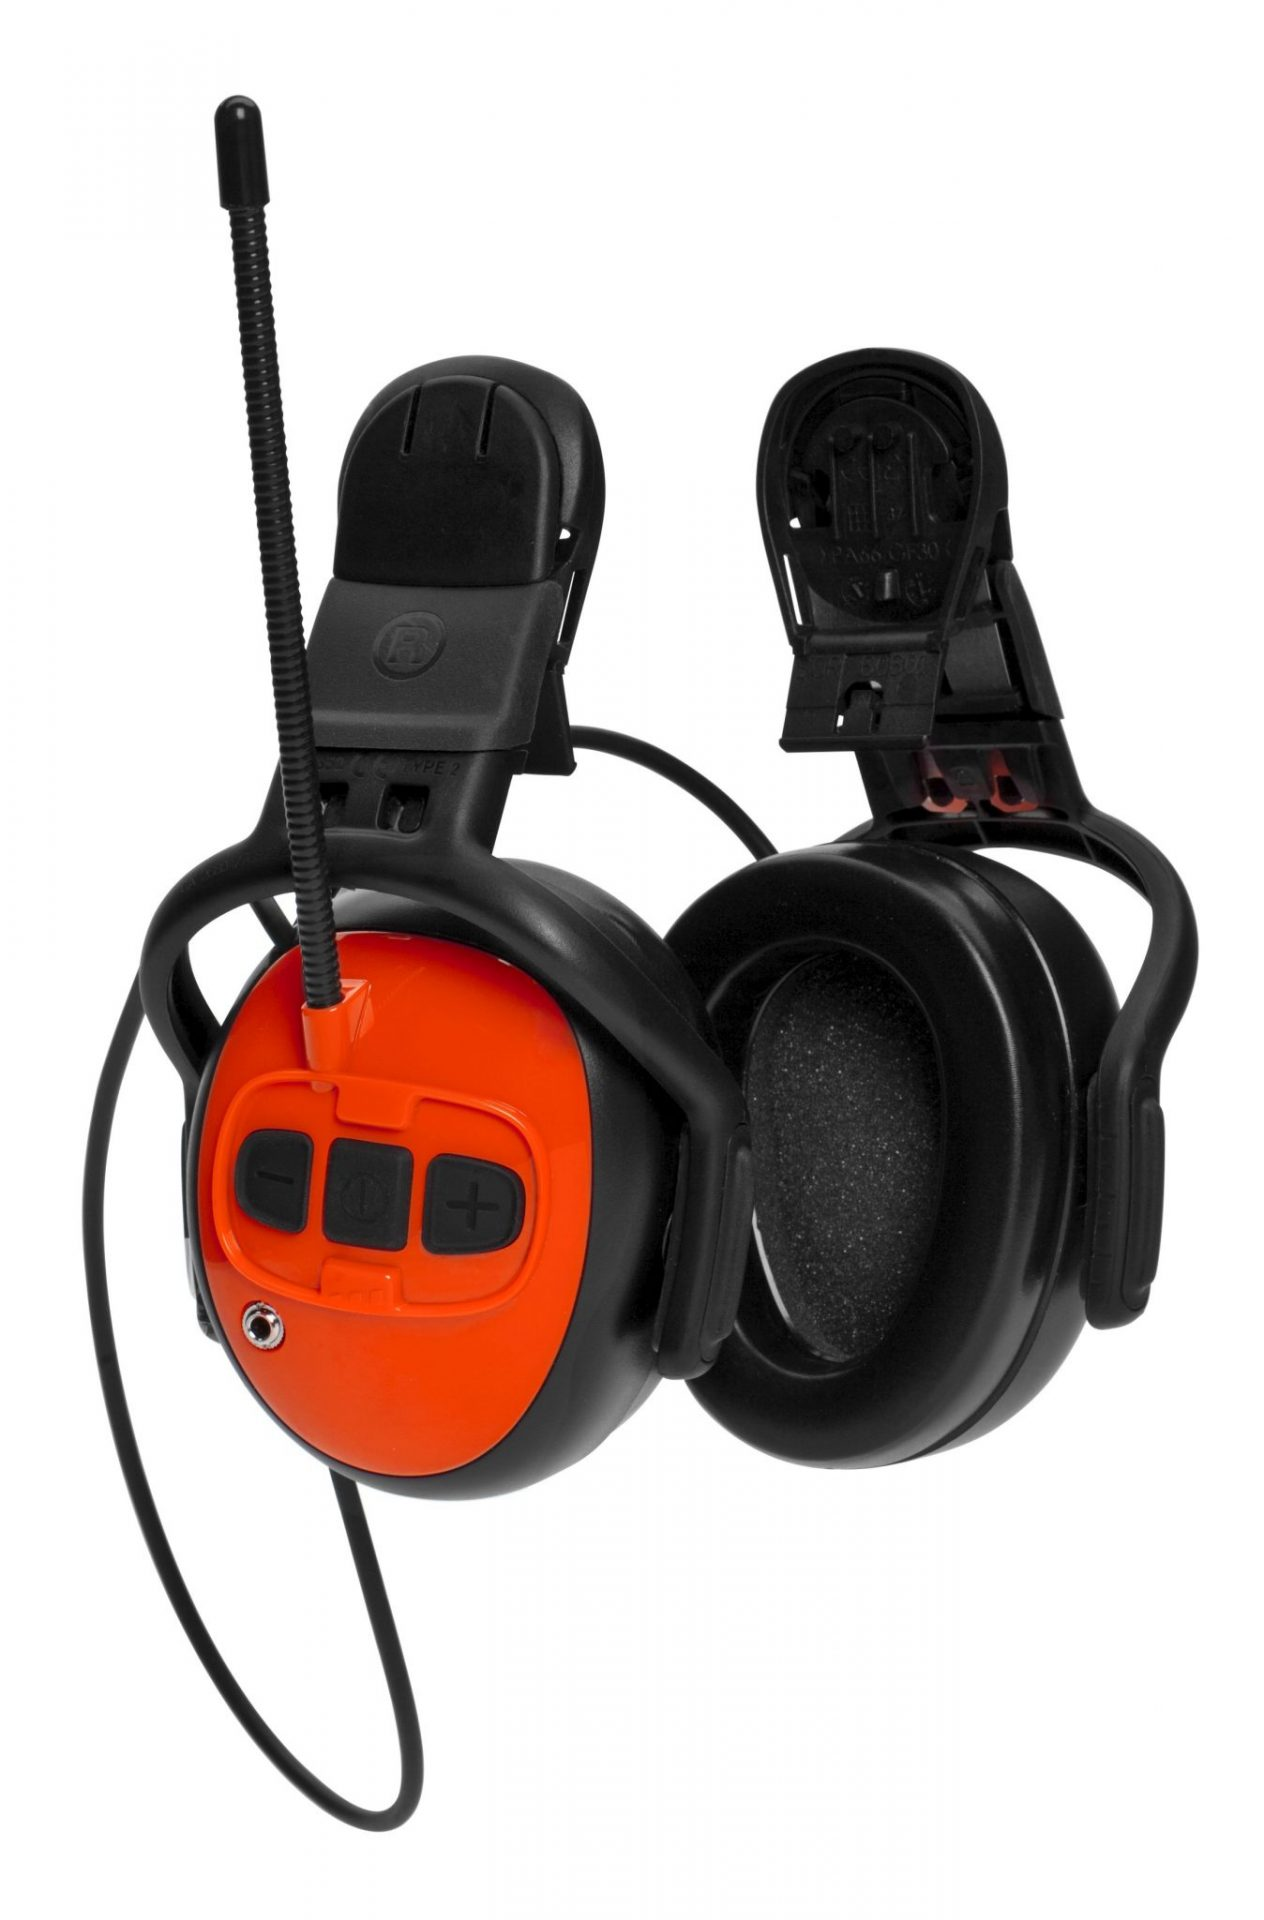 husqvarna fm radio earmuffs for helmet radmore tucker. Black Bedroom Furniture Sets. Home Design Ideas